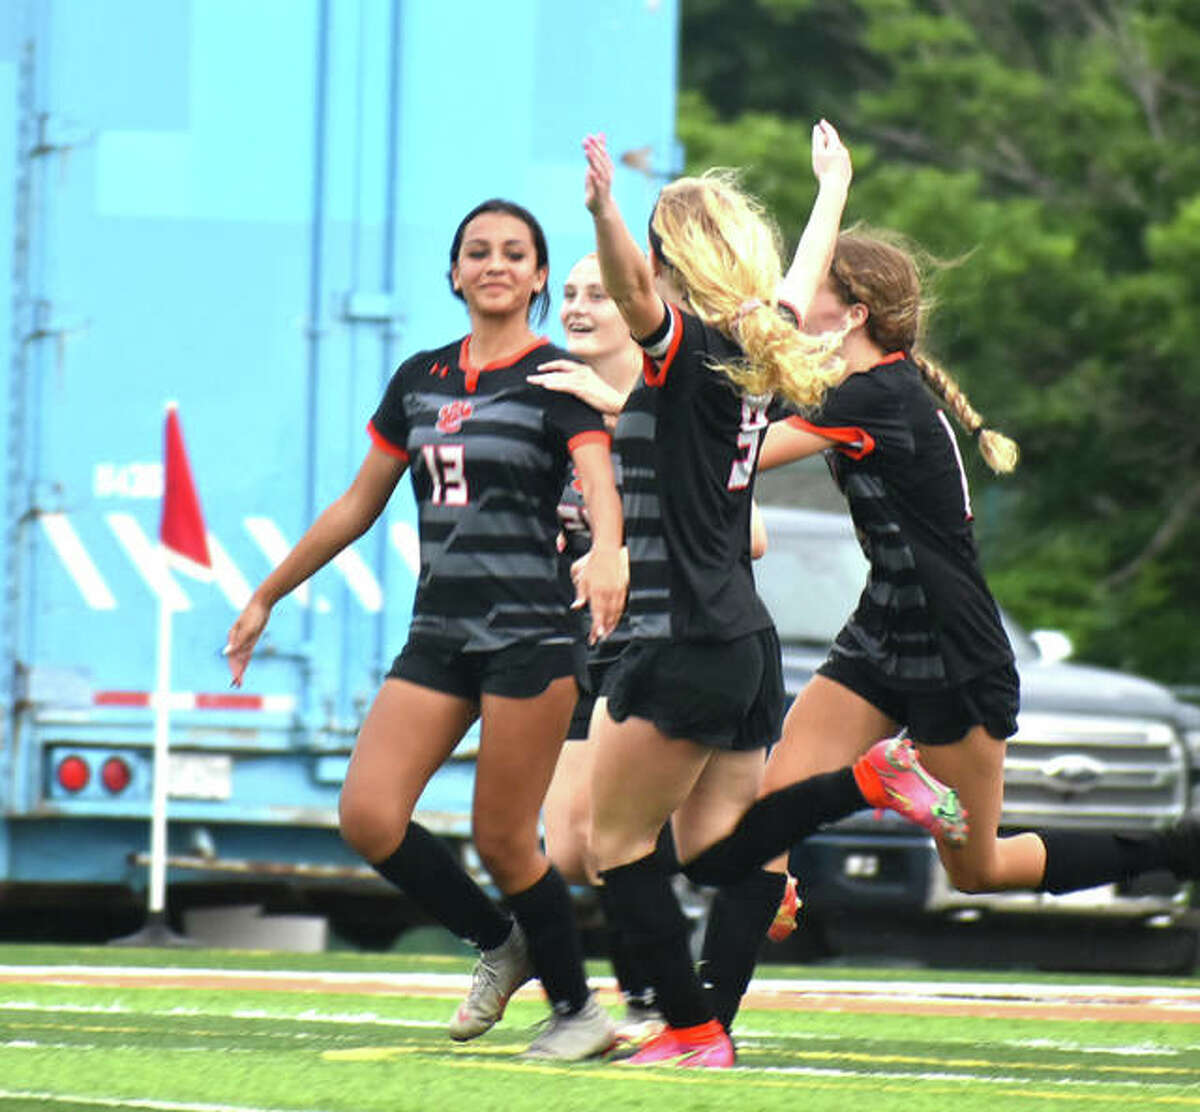 Edwardsville's Mariah Jackson, far left, is congratulated by teammates after her goal in the 44th minute against Quincy.